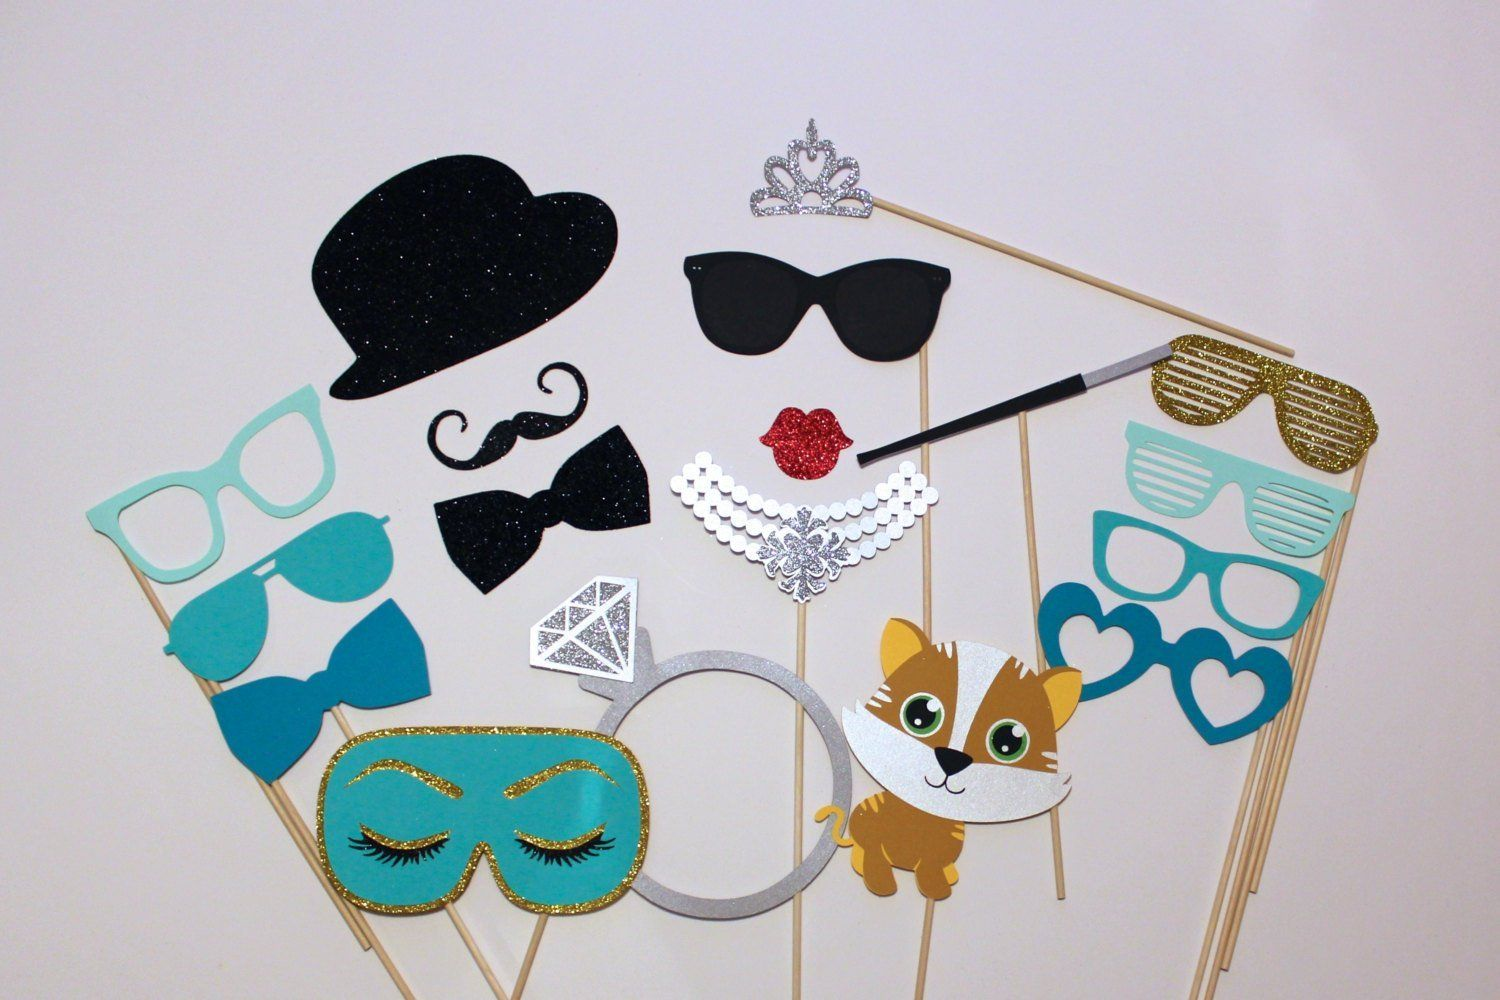 Breakfast at tiffanys photo booth prop